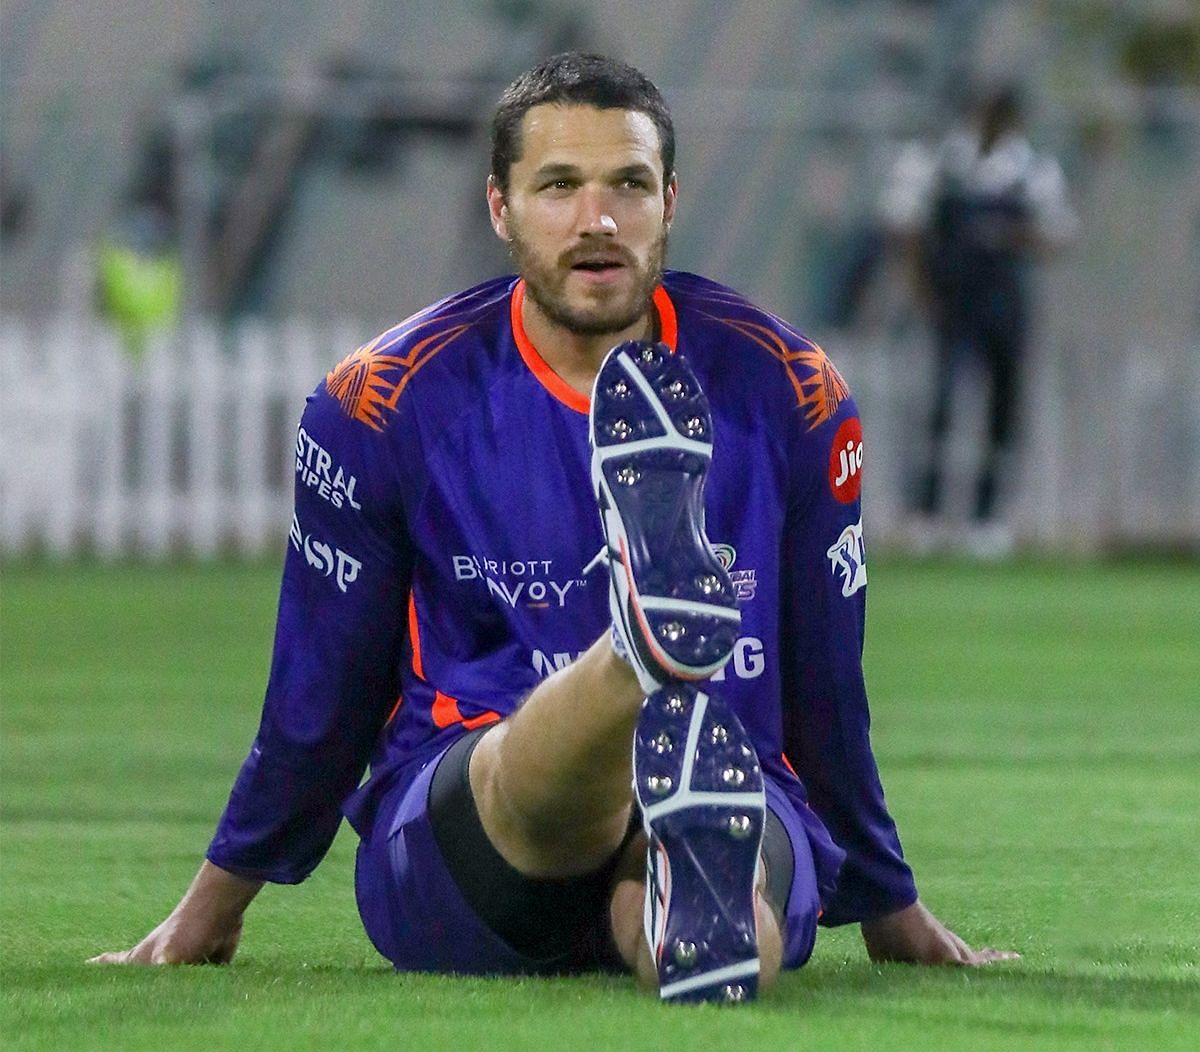 Nathan Coulter-Nile also packs a punch as a lower order batsman, striking the ball in the mid-130s.